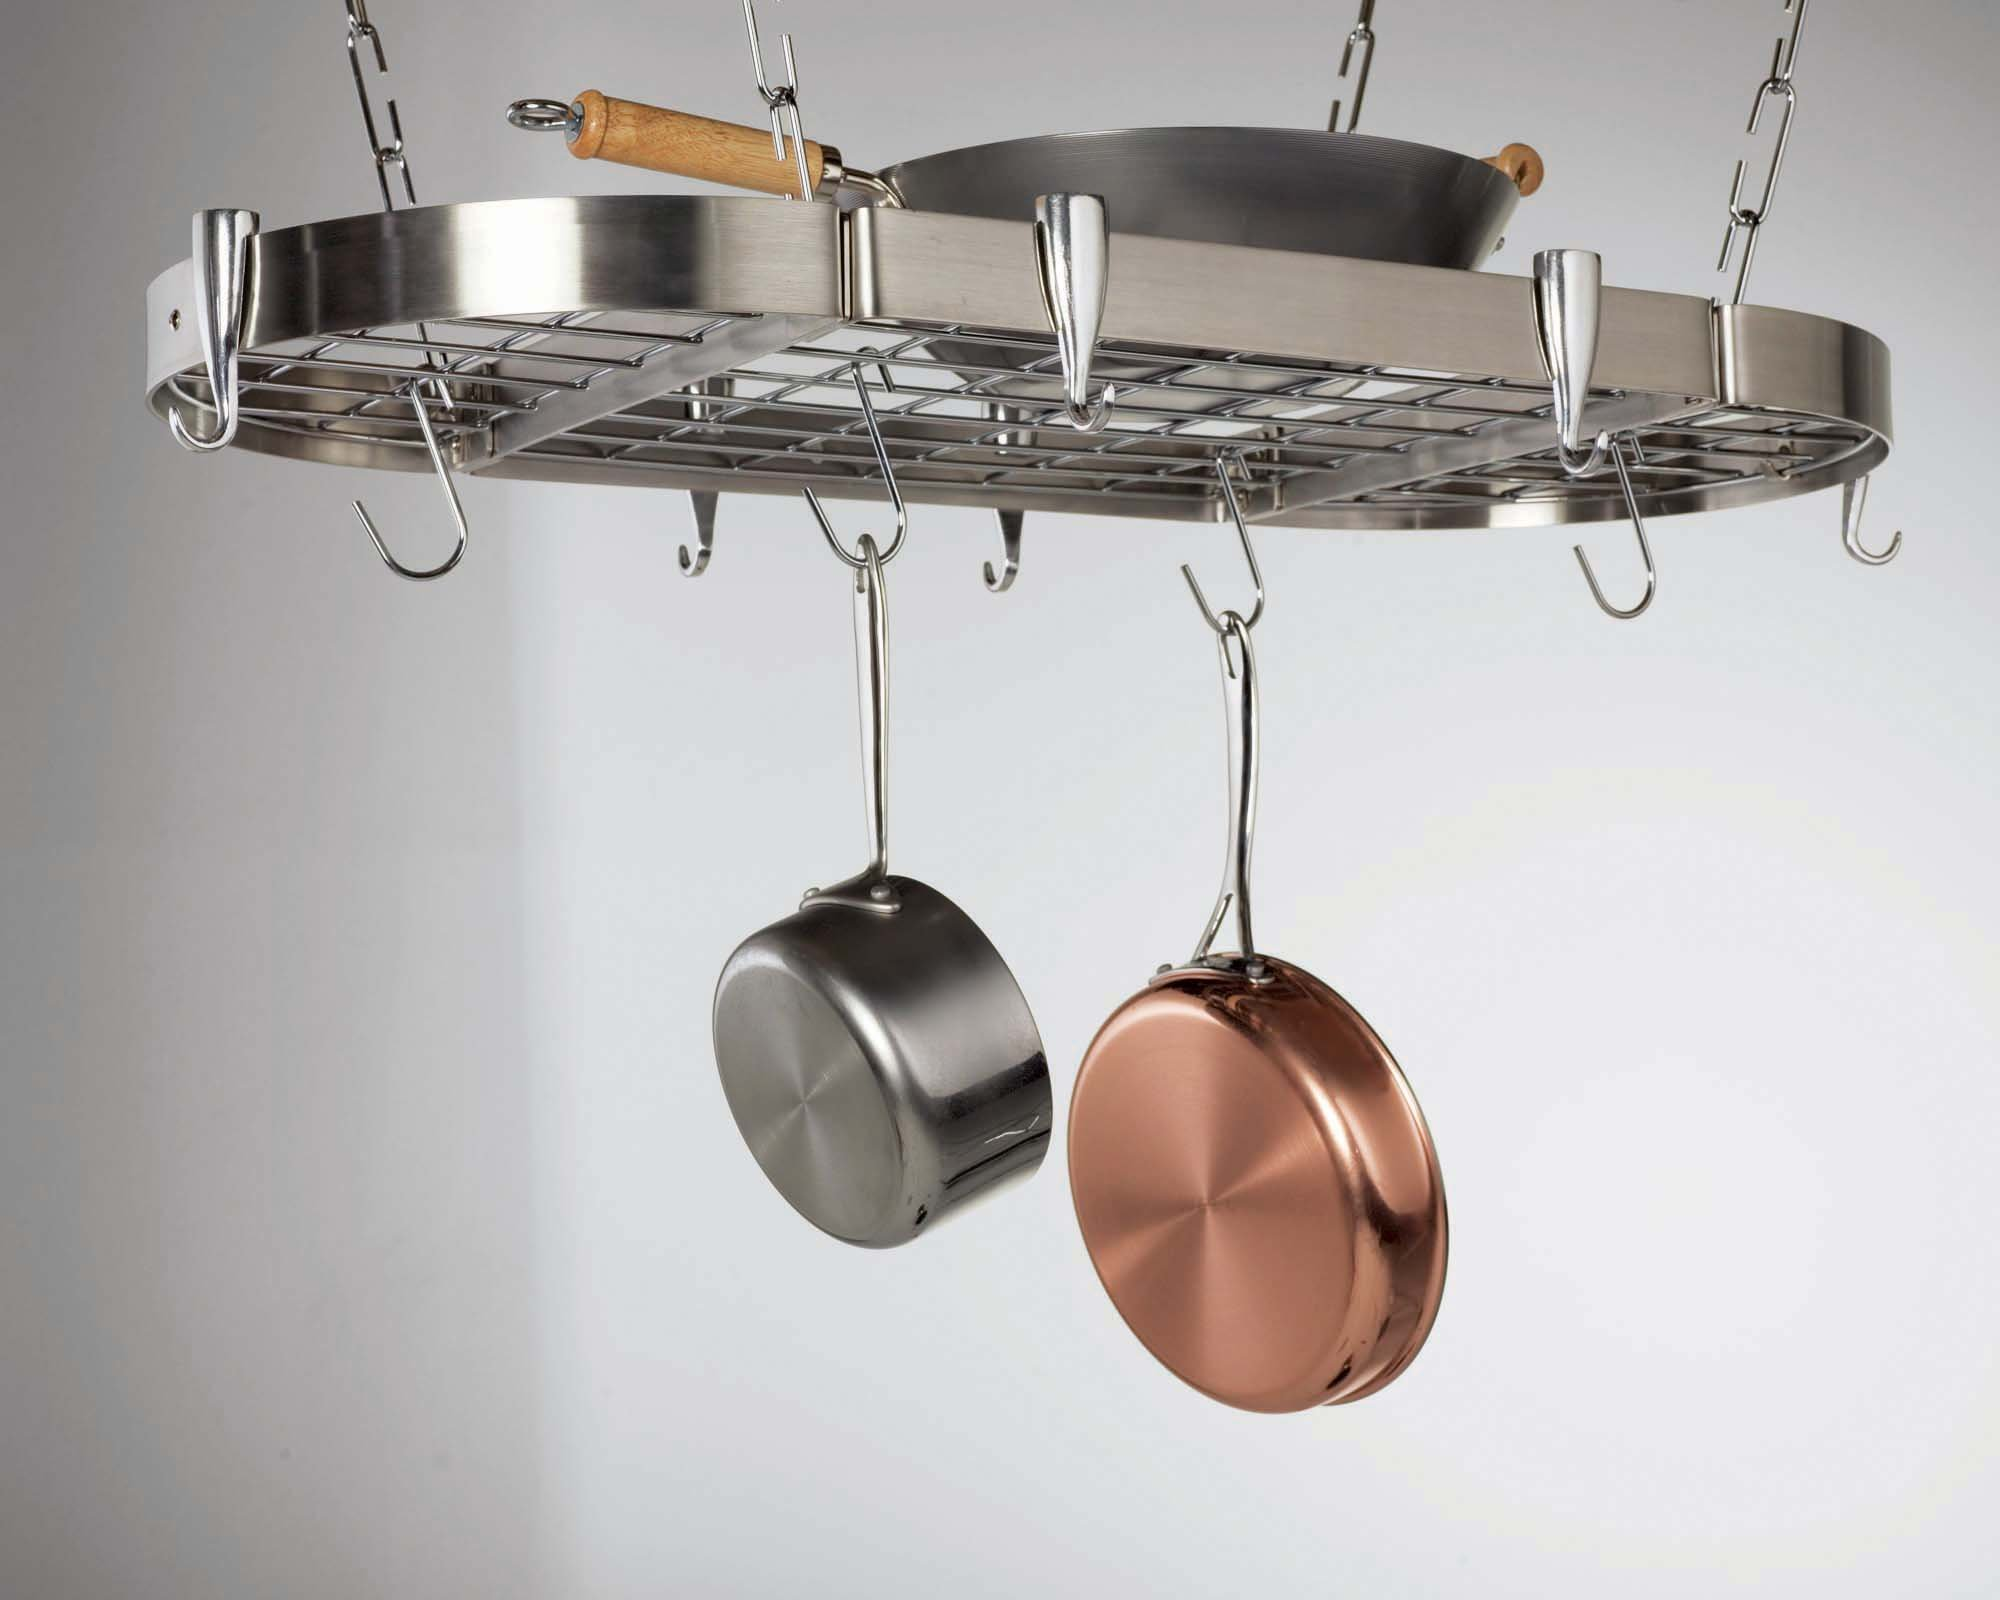 Concept Housewares Oval Stainless Steel Pot Rack